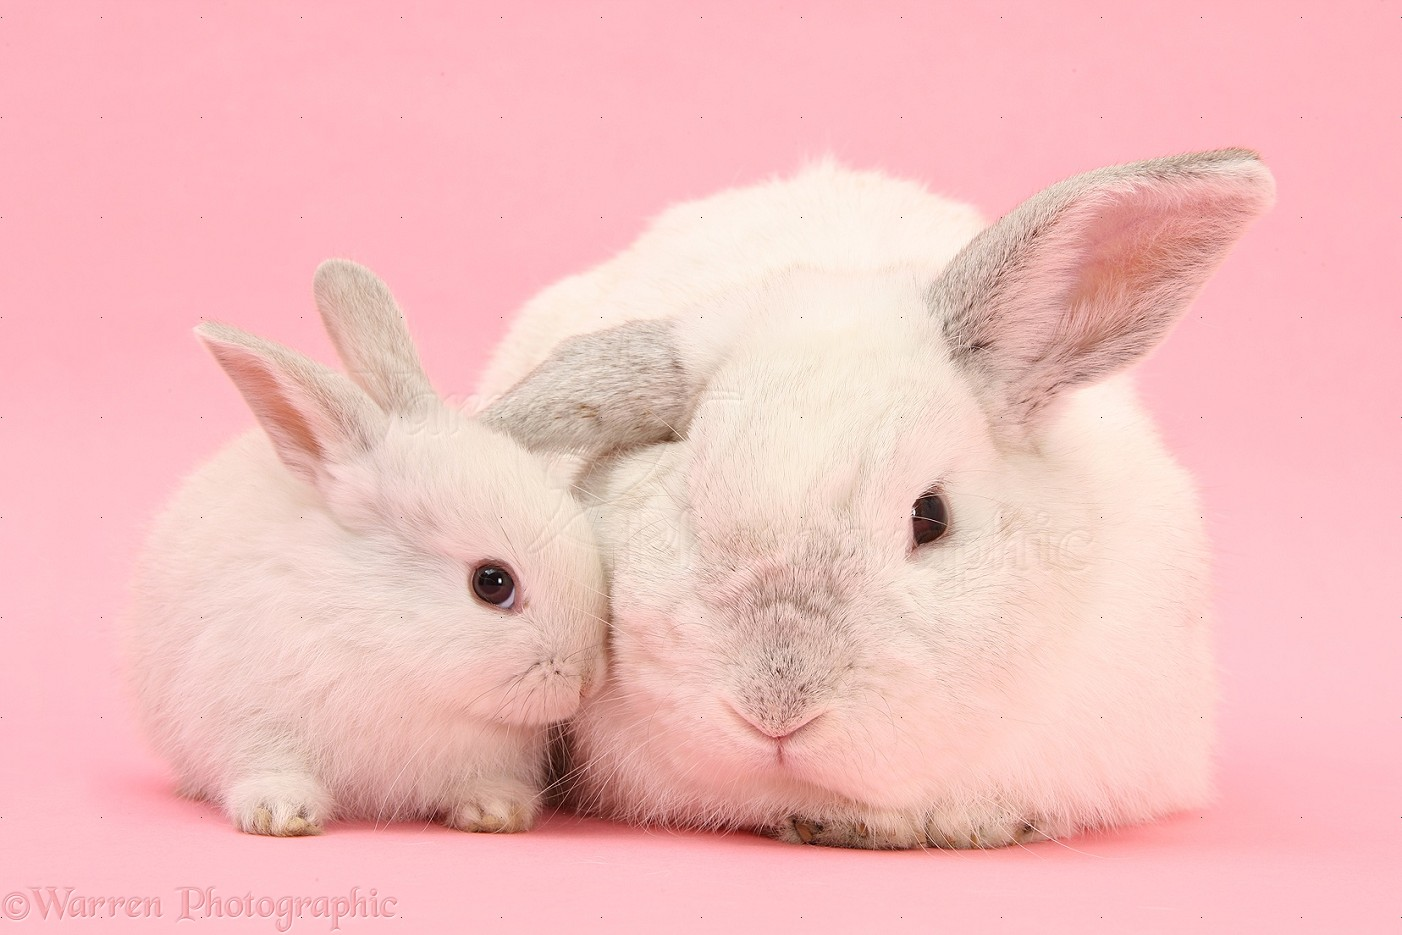 white lop rabbits on pink background photo wp27540